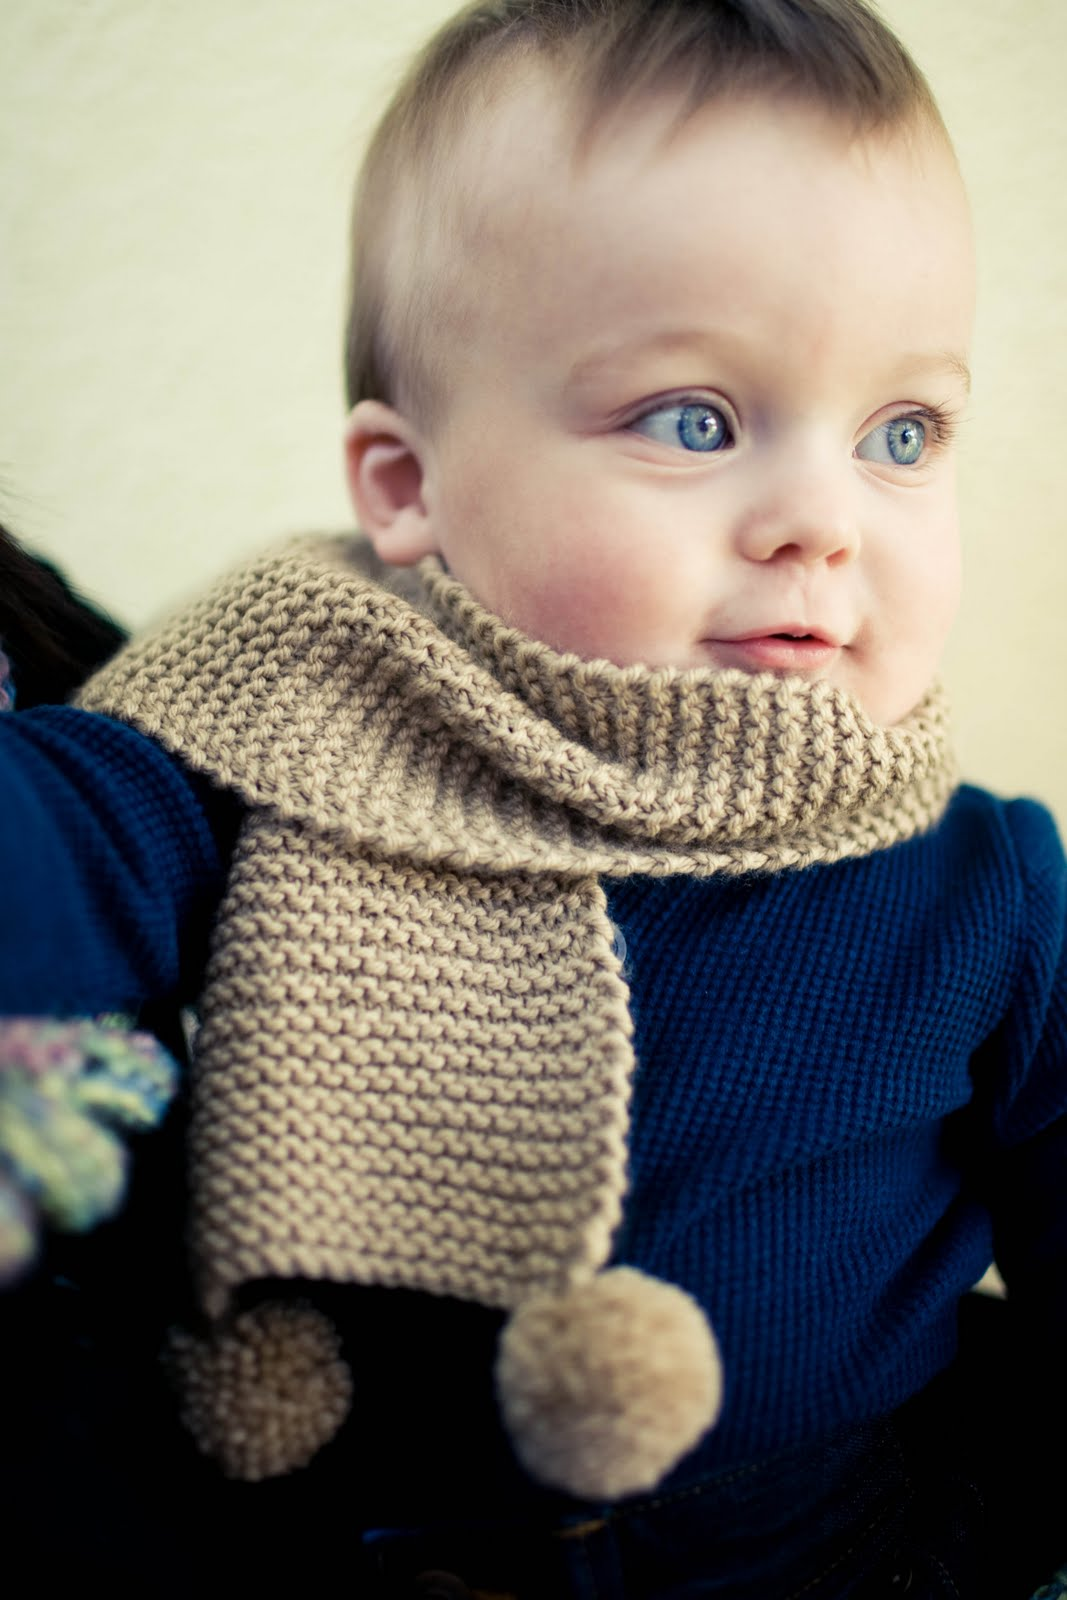 baby scarf OR make it a bit bigger for me? Find this Pin and more on DIY & Crafts that I love by Katherine Robichaux. For Bella, who loves wearing scarves. Kitchen Remodeling Tips and Facts baby scarf OR make it a bit bigger for me?